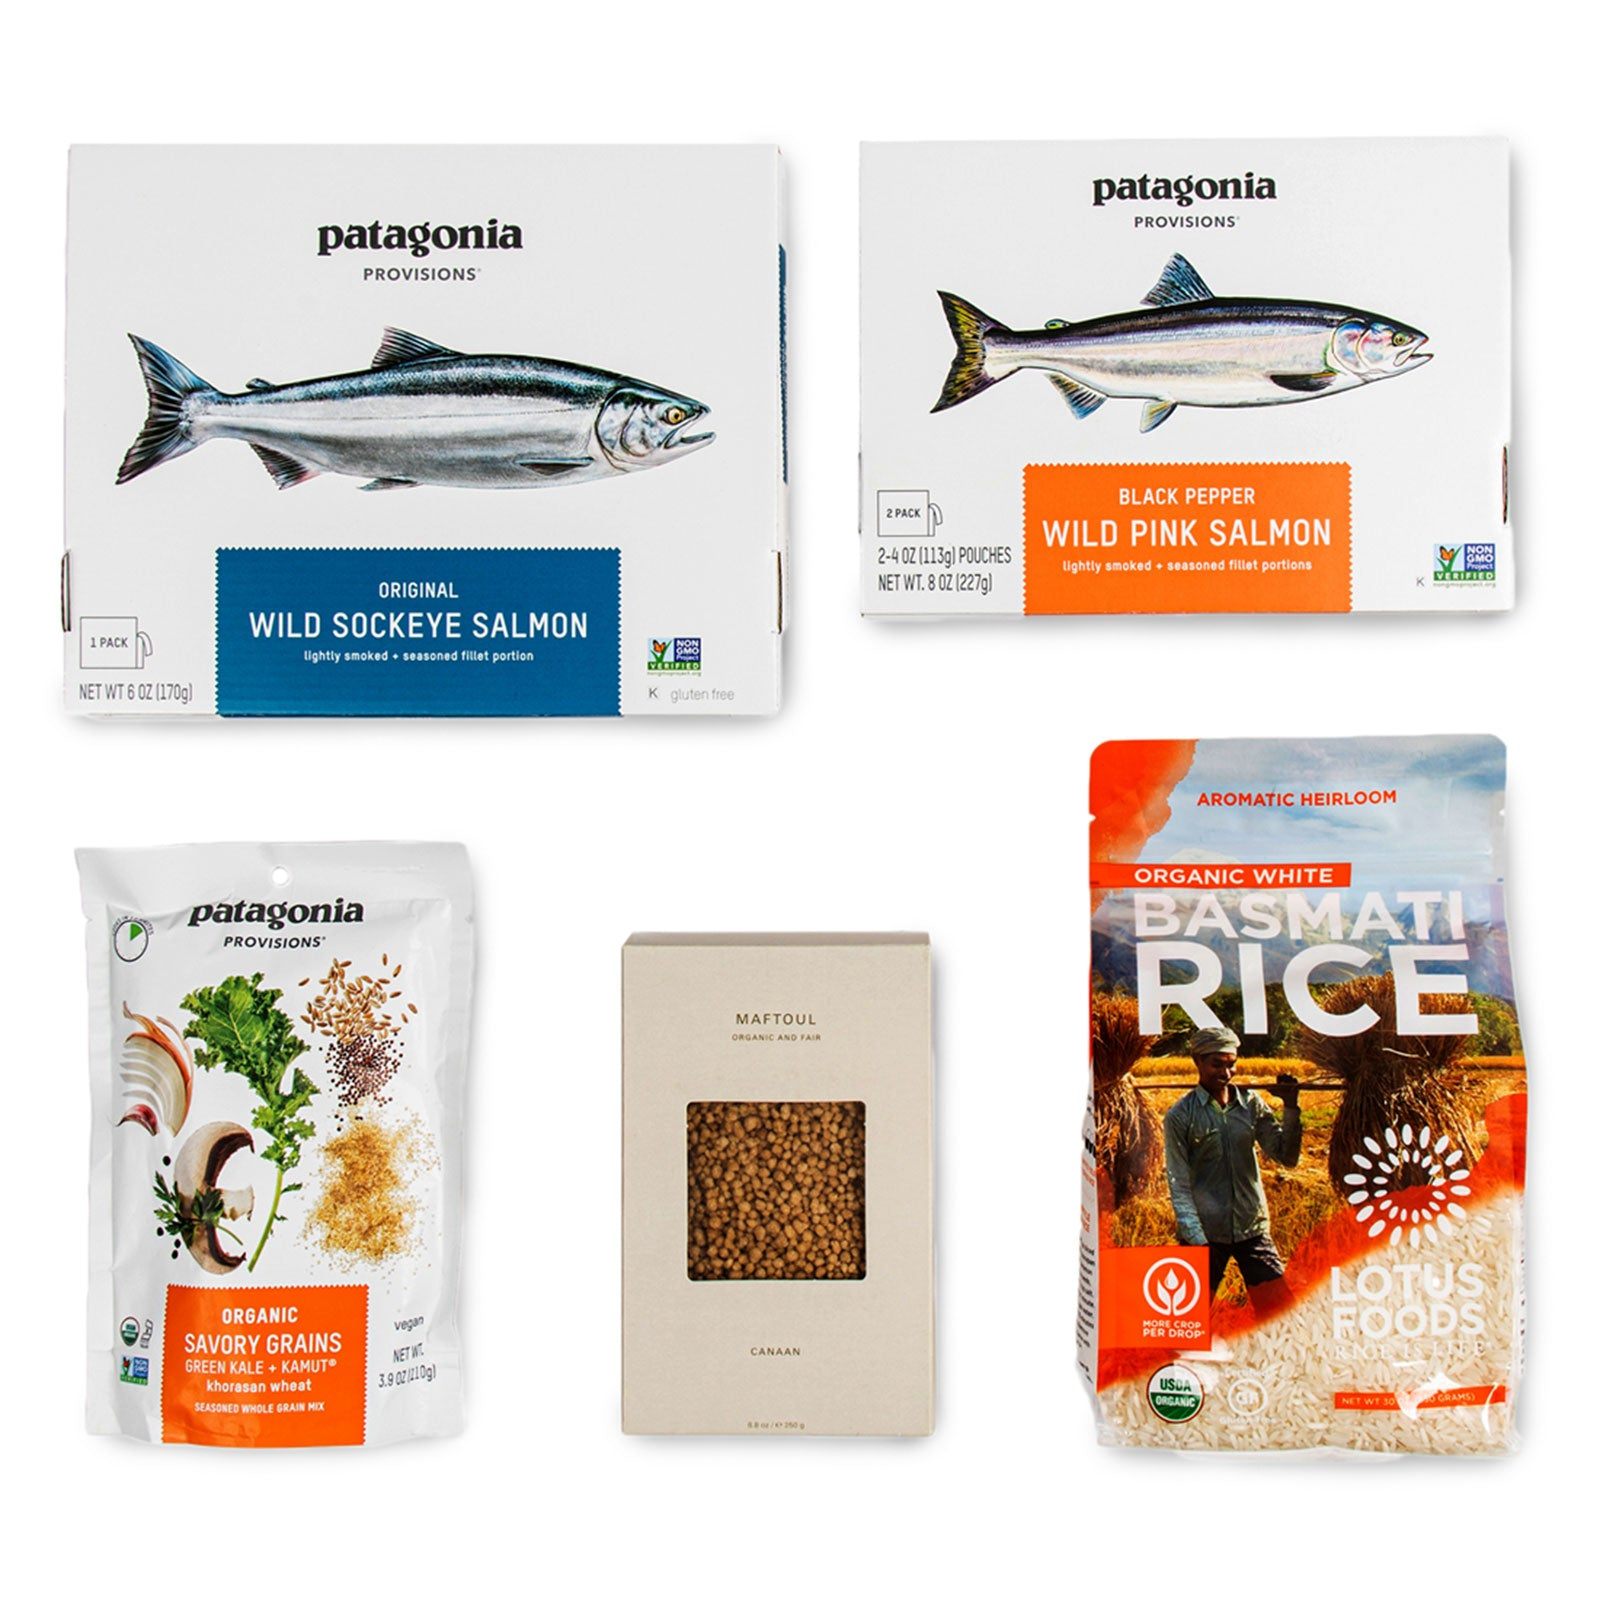 Content of Patagonia Provisions Seafood and Grains Good Together Sampler on a white background